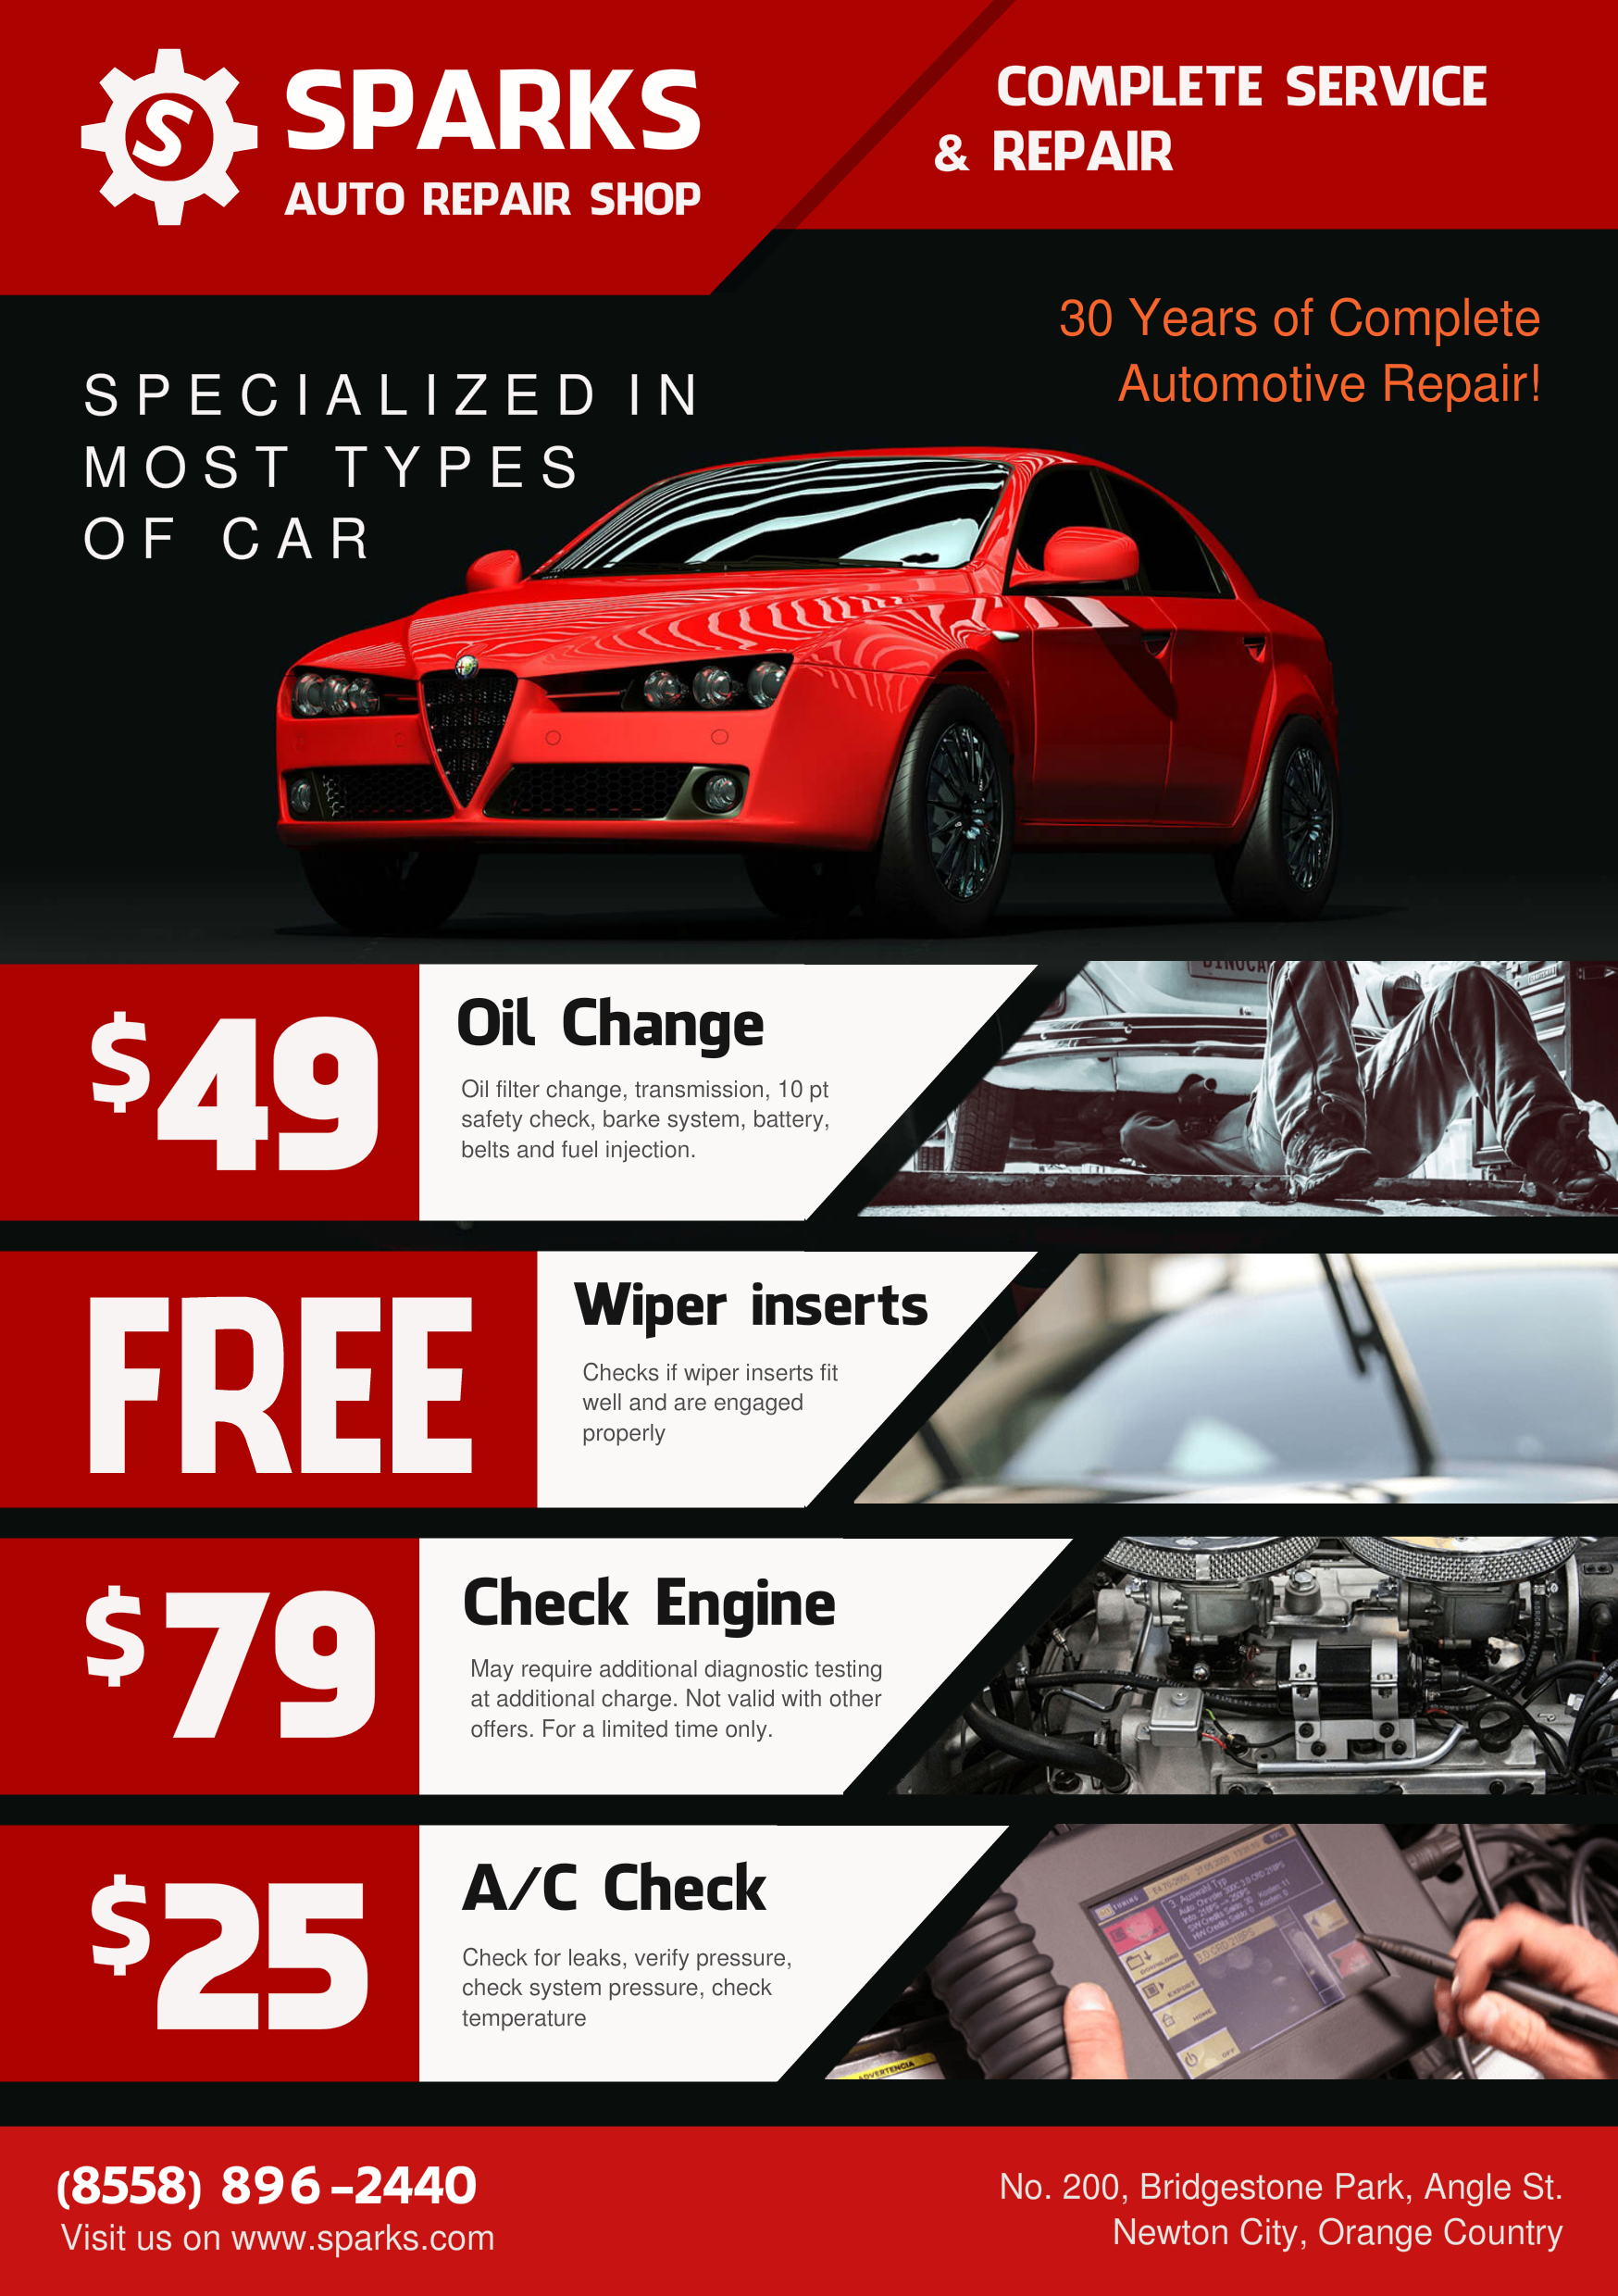 Template For Flyer A5 Auto Repair Shop Theme Auto Repair Shop Mobile Auto Repair Auto Repair